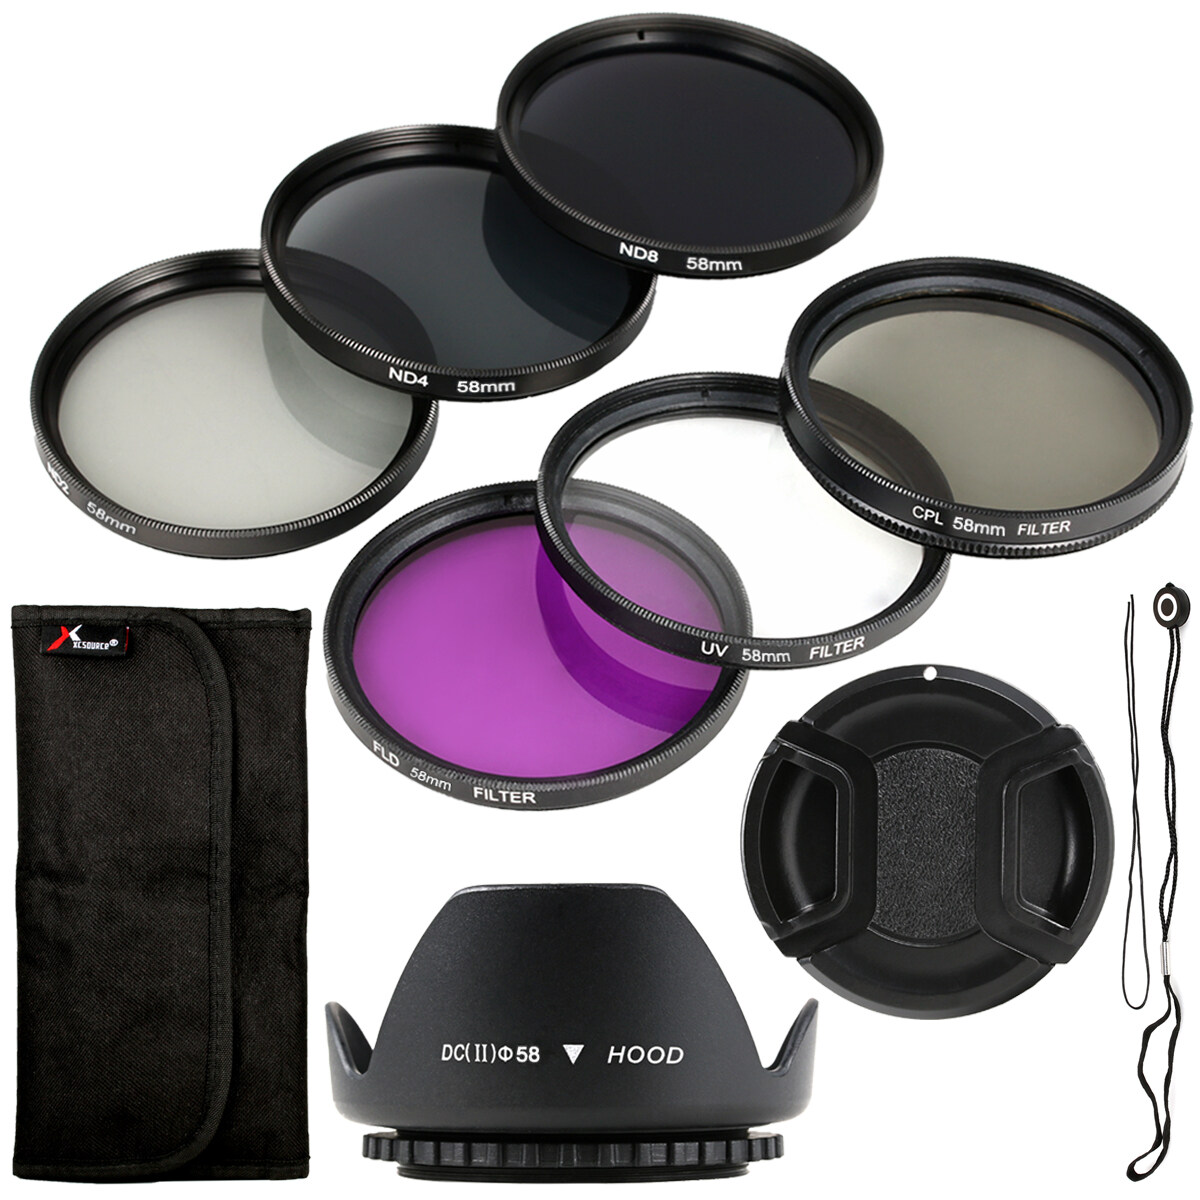 XCSource ชุดฟิลเตอร์  58mm Filter Set UV CPL FLD ND2 ND4 ND8 + Lens Hood + Cap สำหรับ Canon 18-55mm